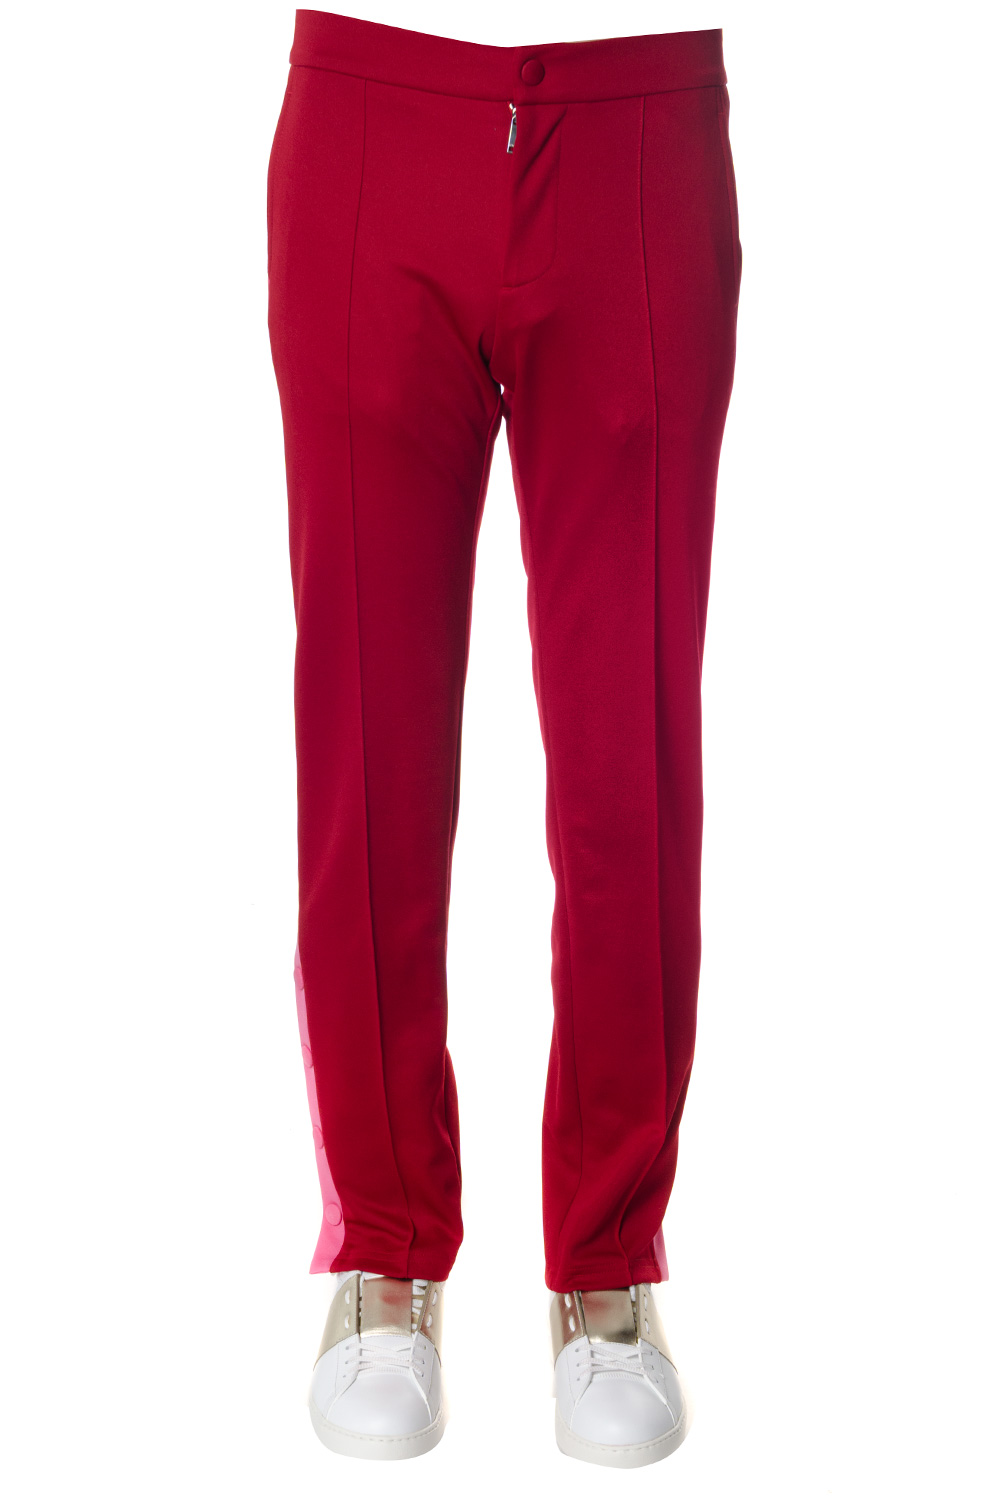 7df211243d1d RED COTTON PANTS SS 2018 - VALENTINO - Boutique Galiano